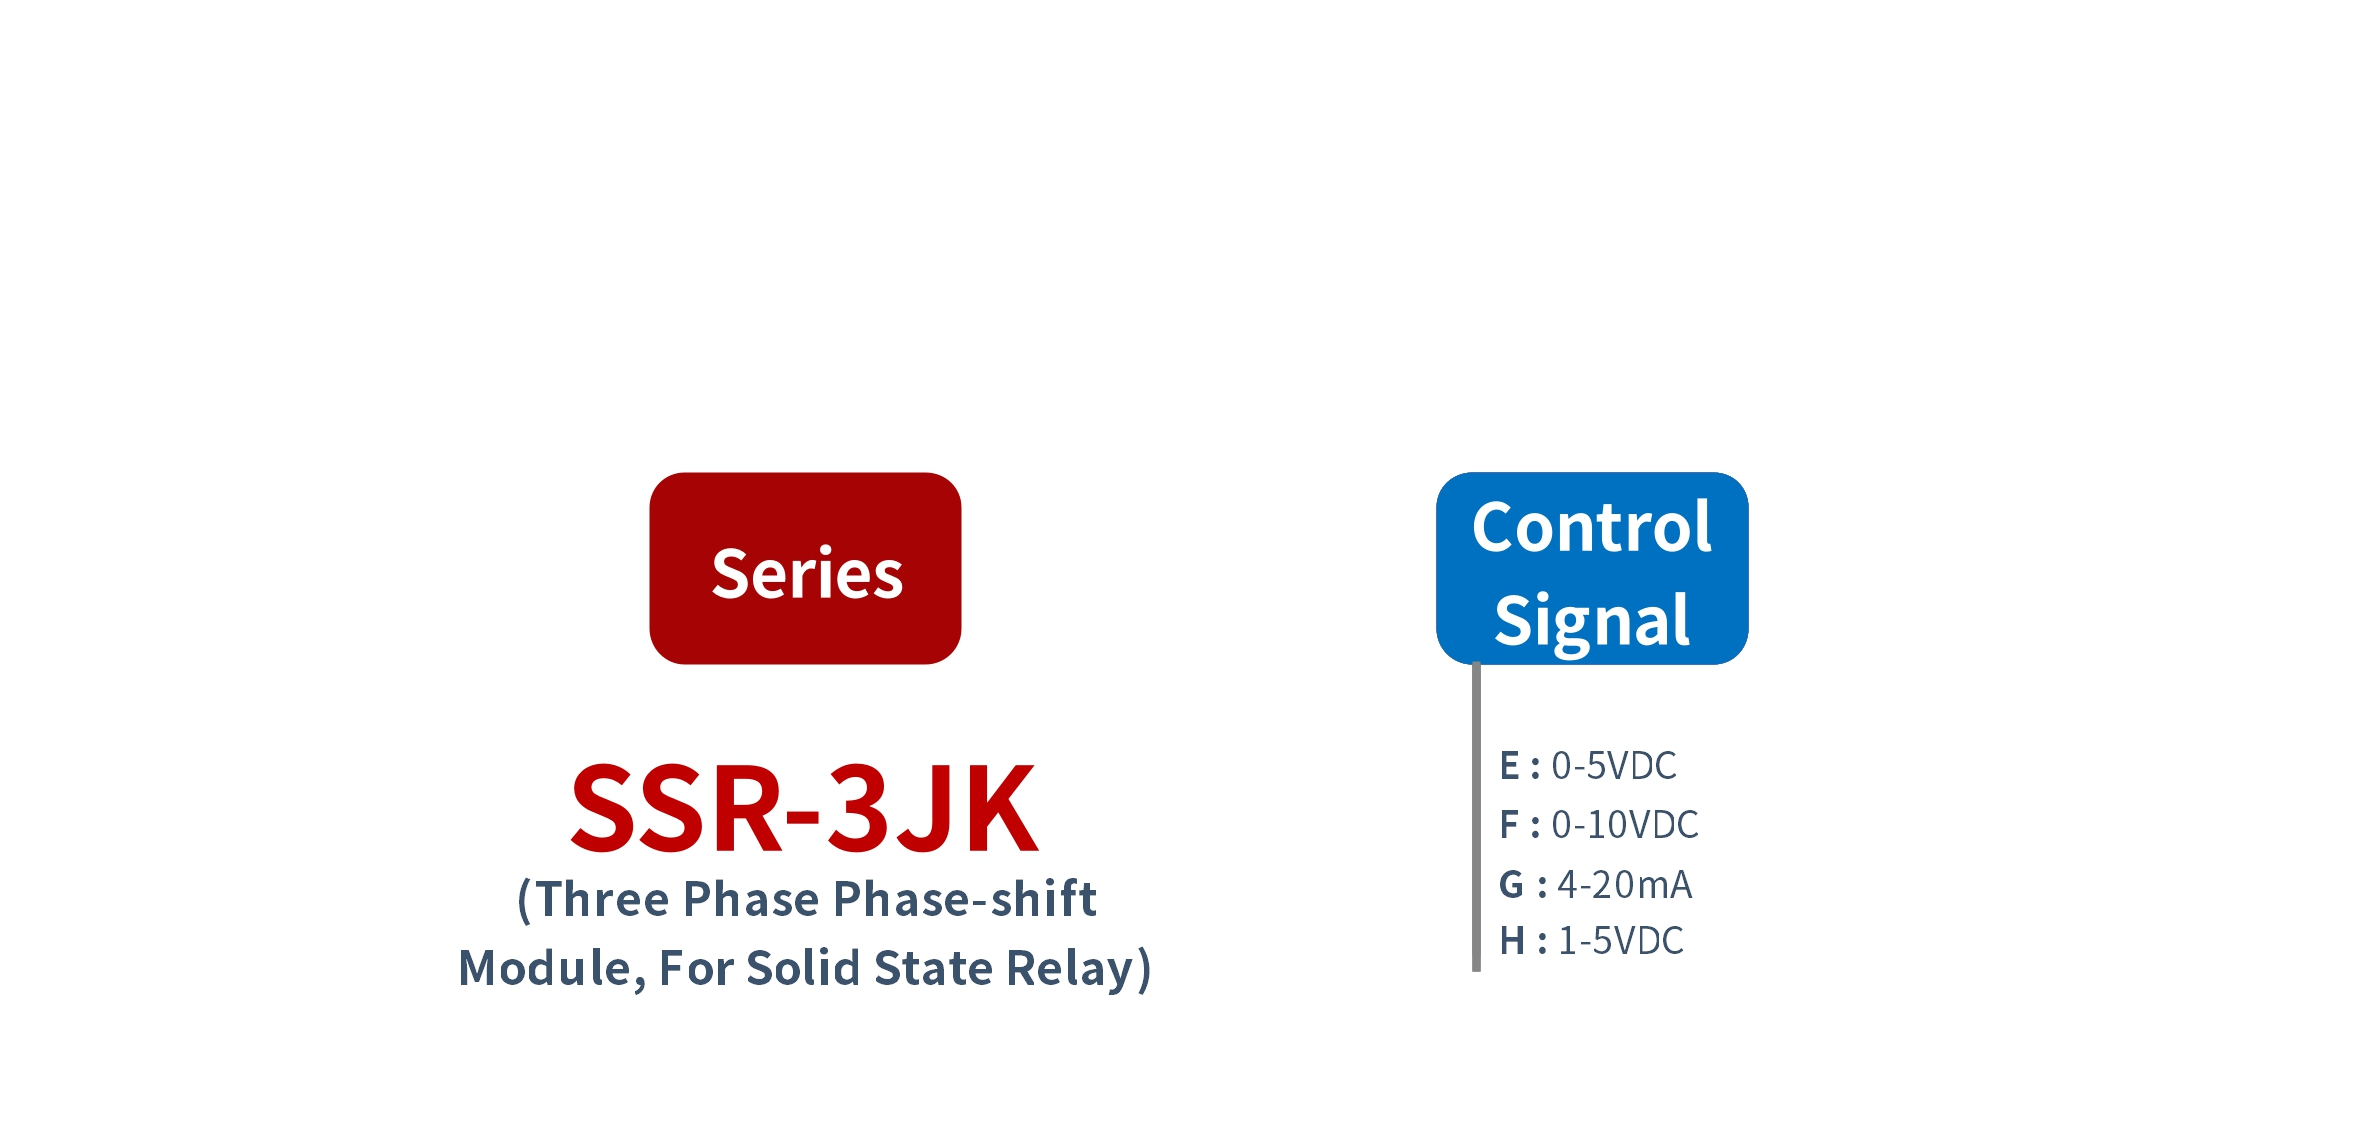 How to order SSR-3JK Series Voltage Power Regulator